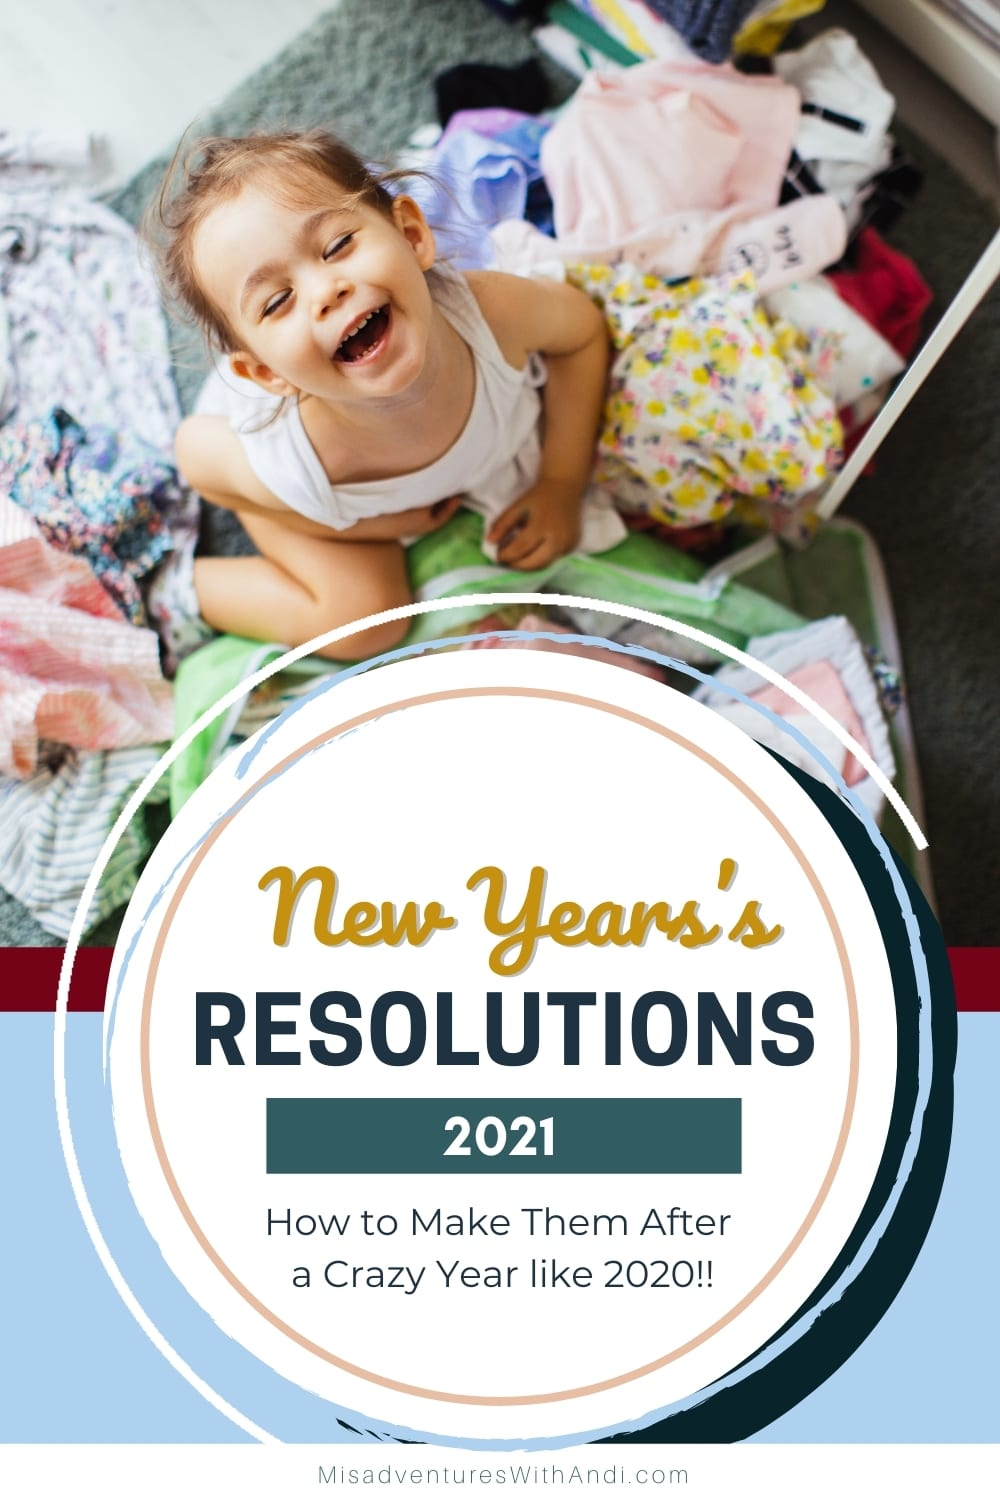 New Year's Resolutions 2021 | goal setting tips and resolution ideas